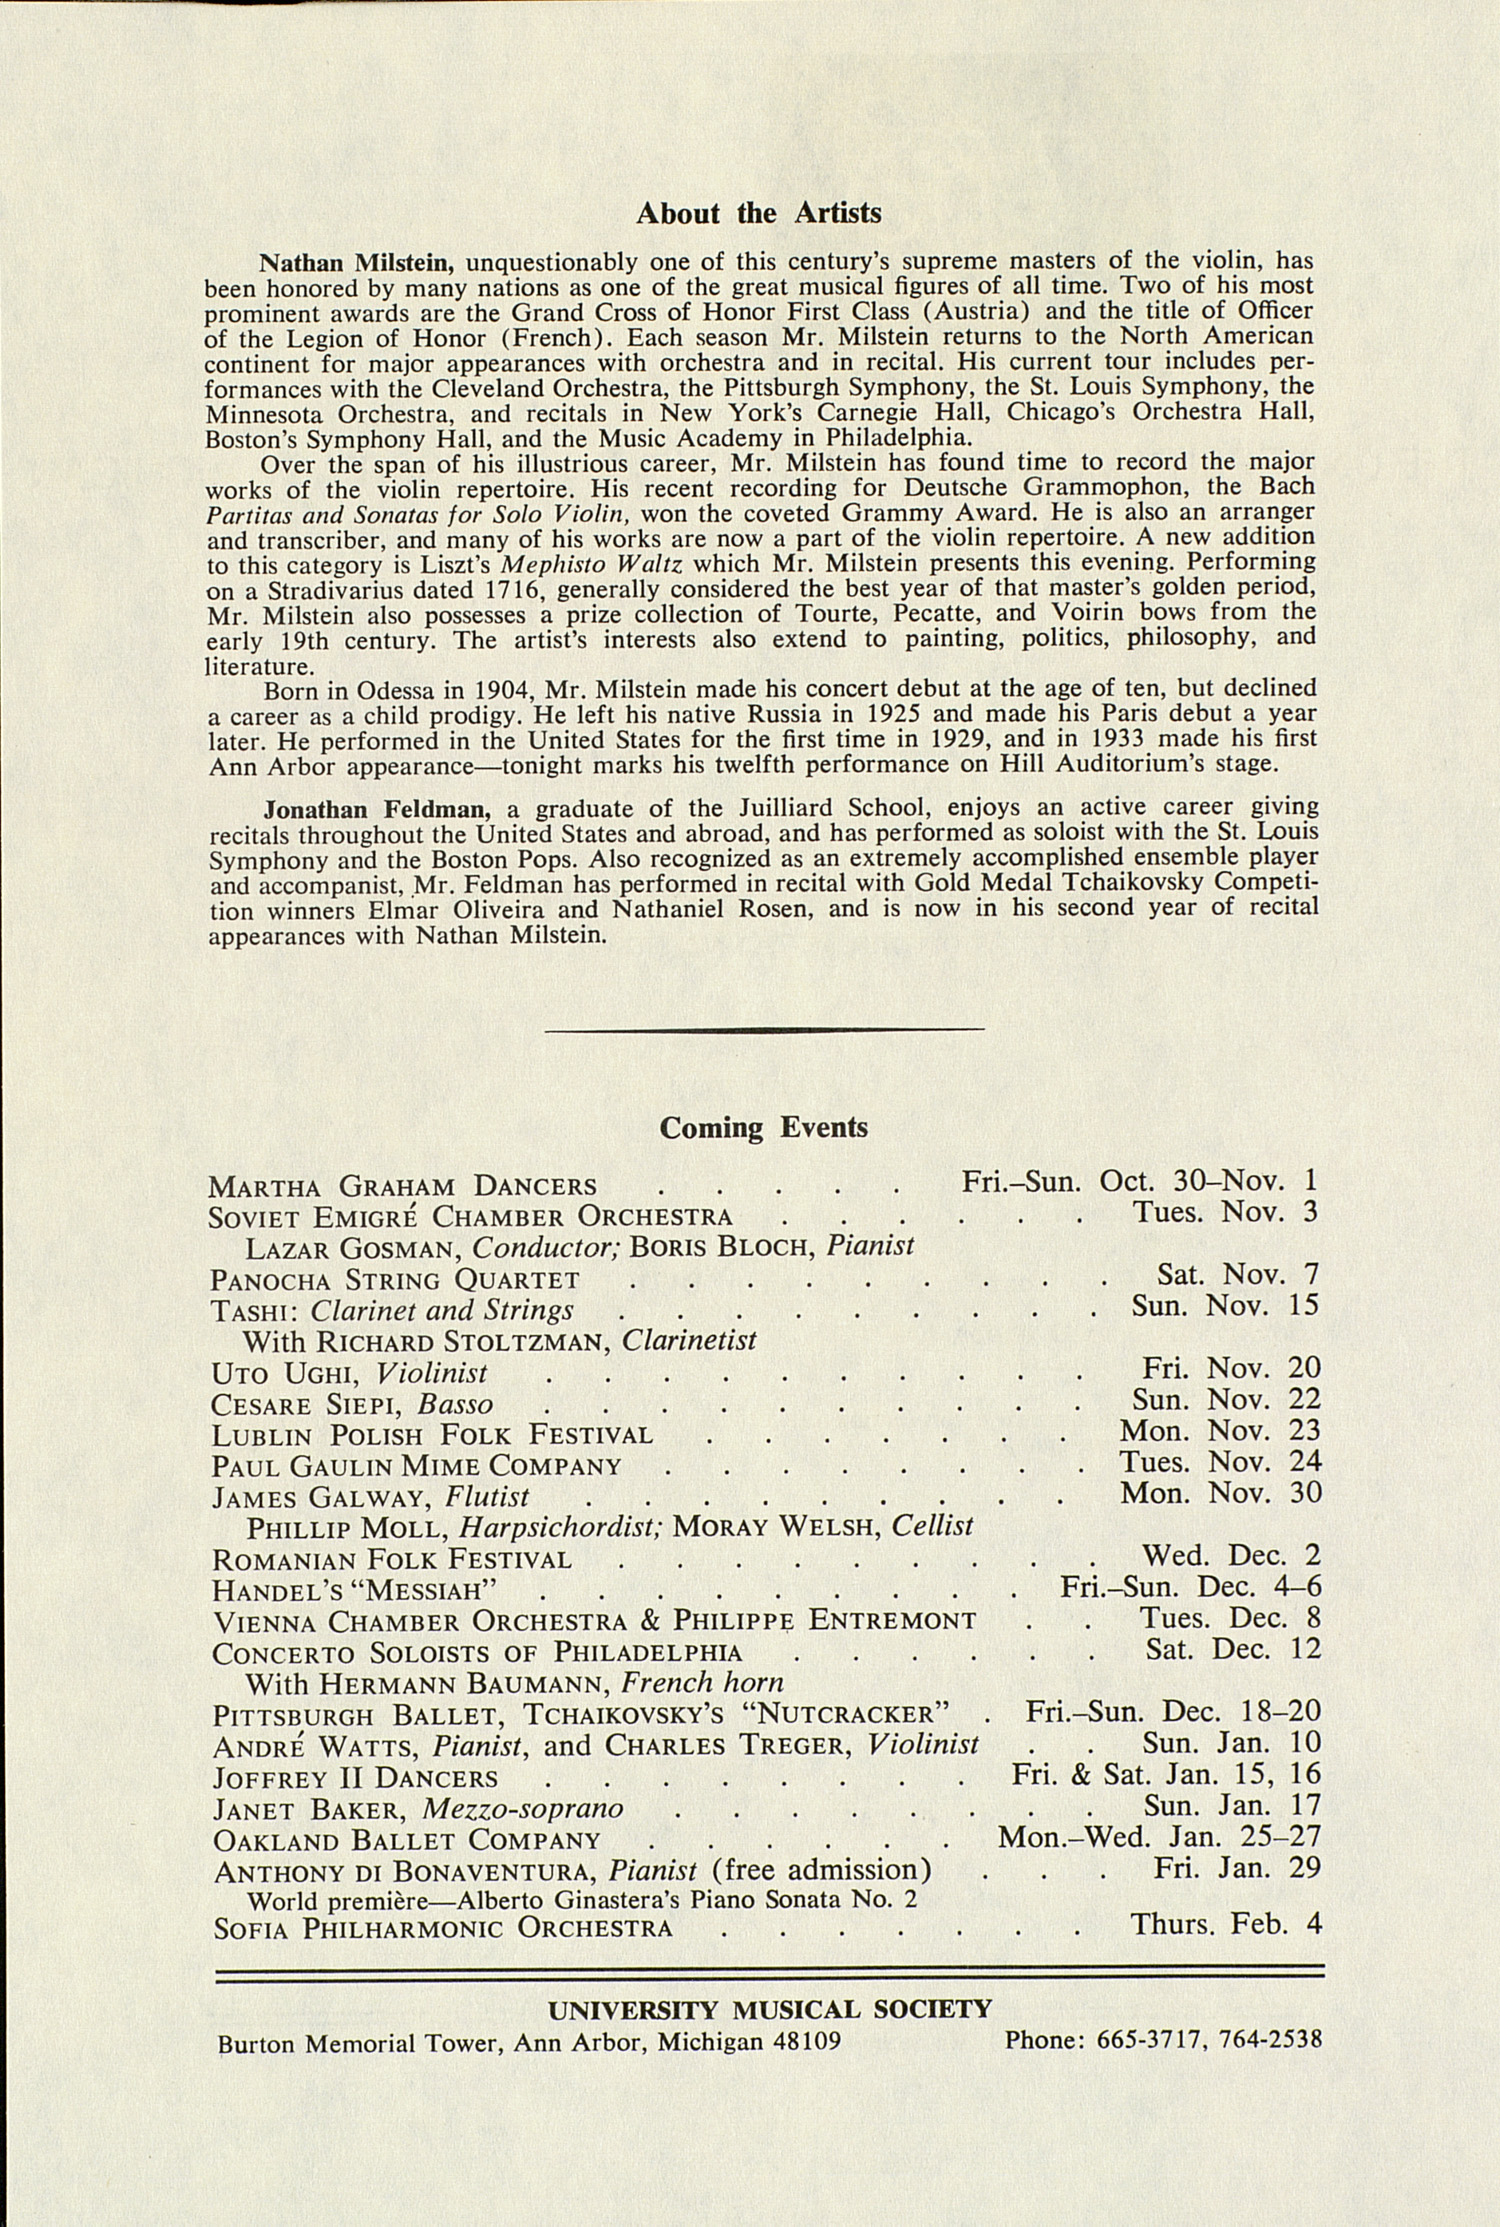 UMS Concert Program, October 29, 1981: International Presentations Of Music & Dance --  image